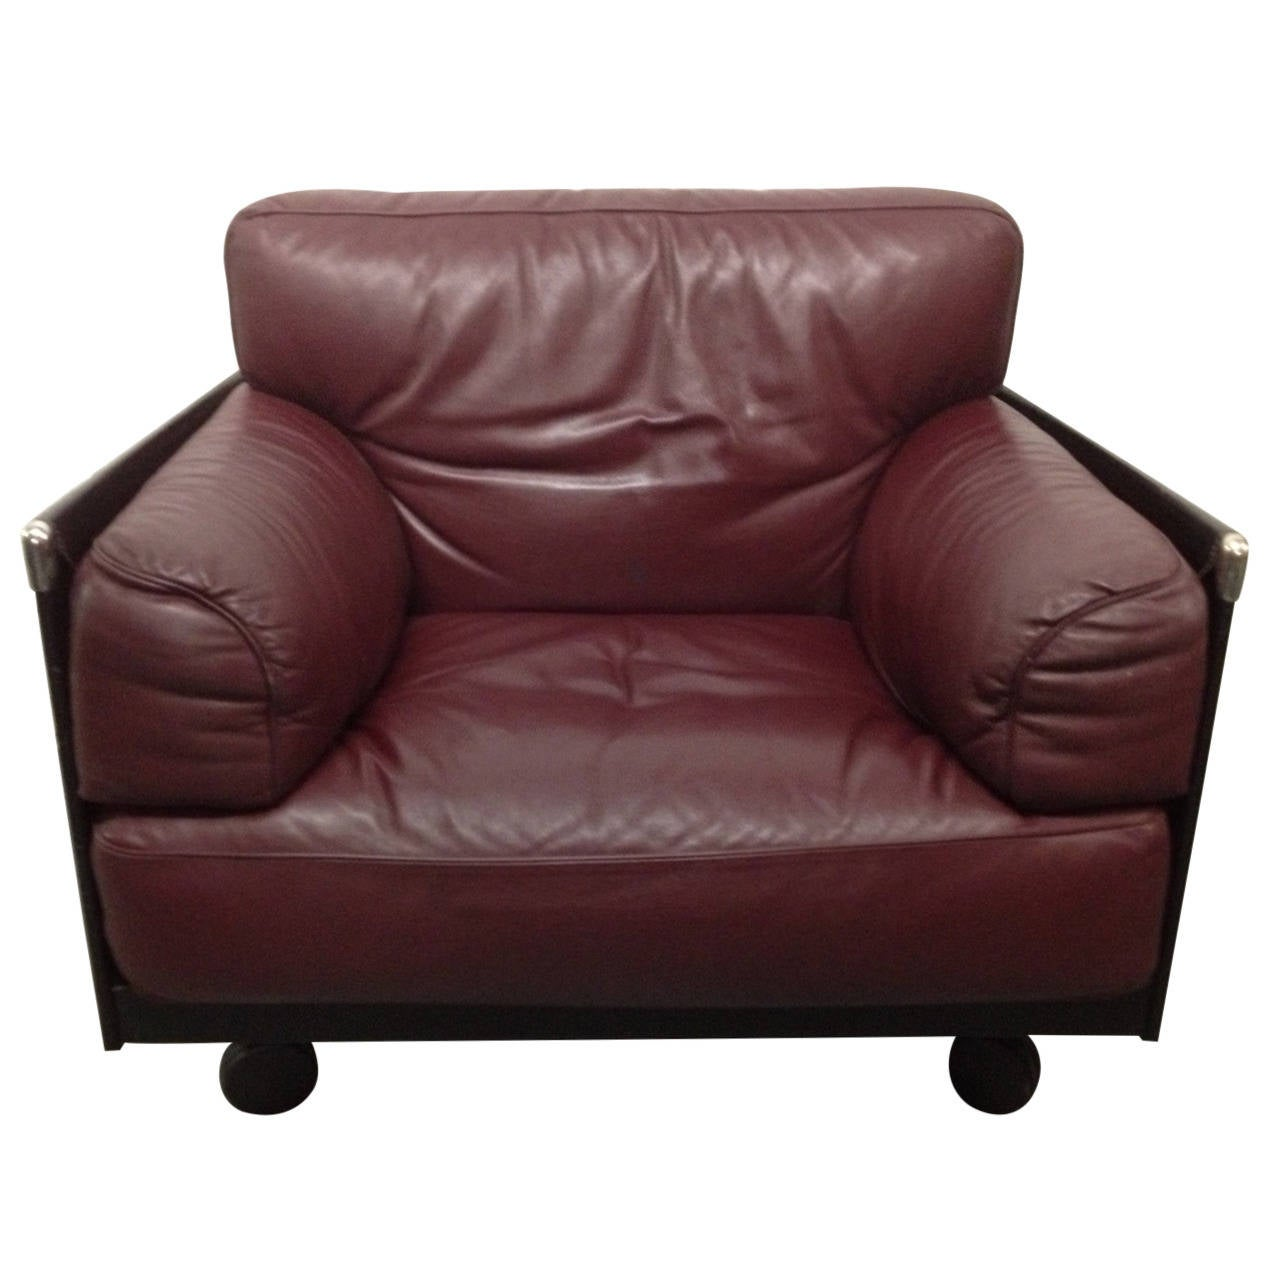 Poltrona Recliner Leather Lounge Chair By Poltrona Frau